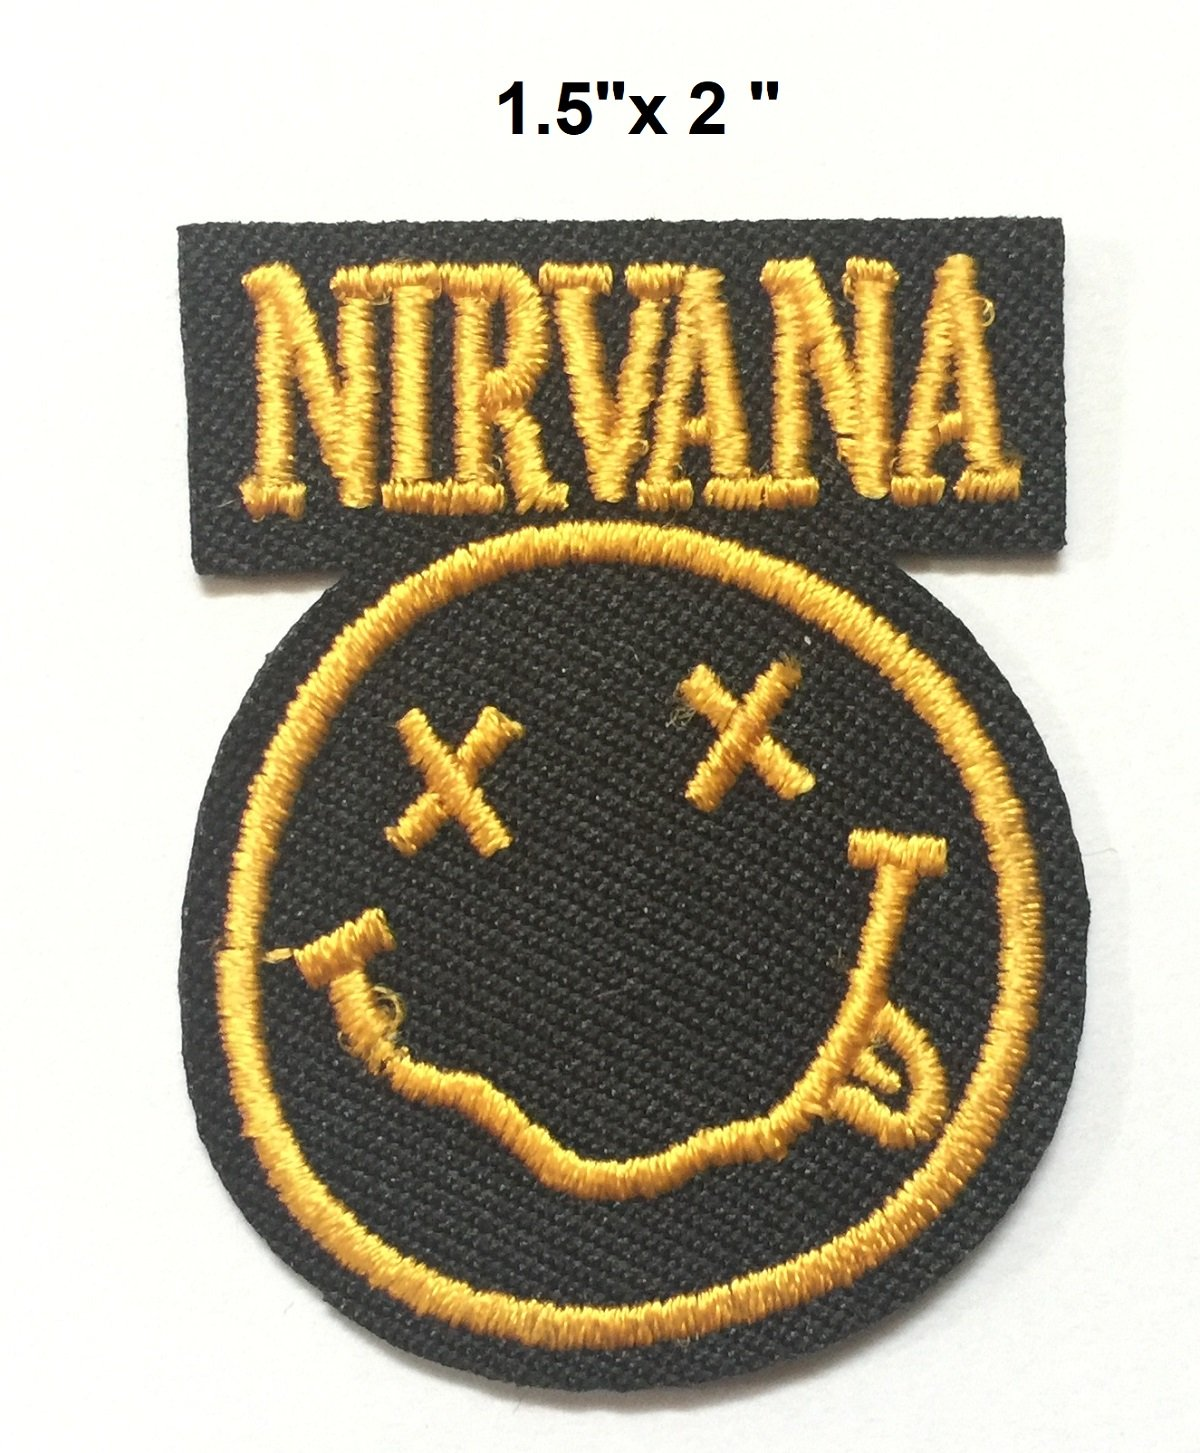 Set patch of Iron on Band Patches Rock Music Band #12,Guns n Roses Patch,AC DC ACDC Patch,Misfits Rock Music Band Patch,Slipknot patch,Nirvana,Iron Maiden Patch,The Beatles Band Patch, Sublime Patch